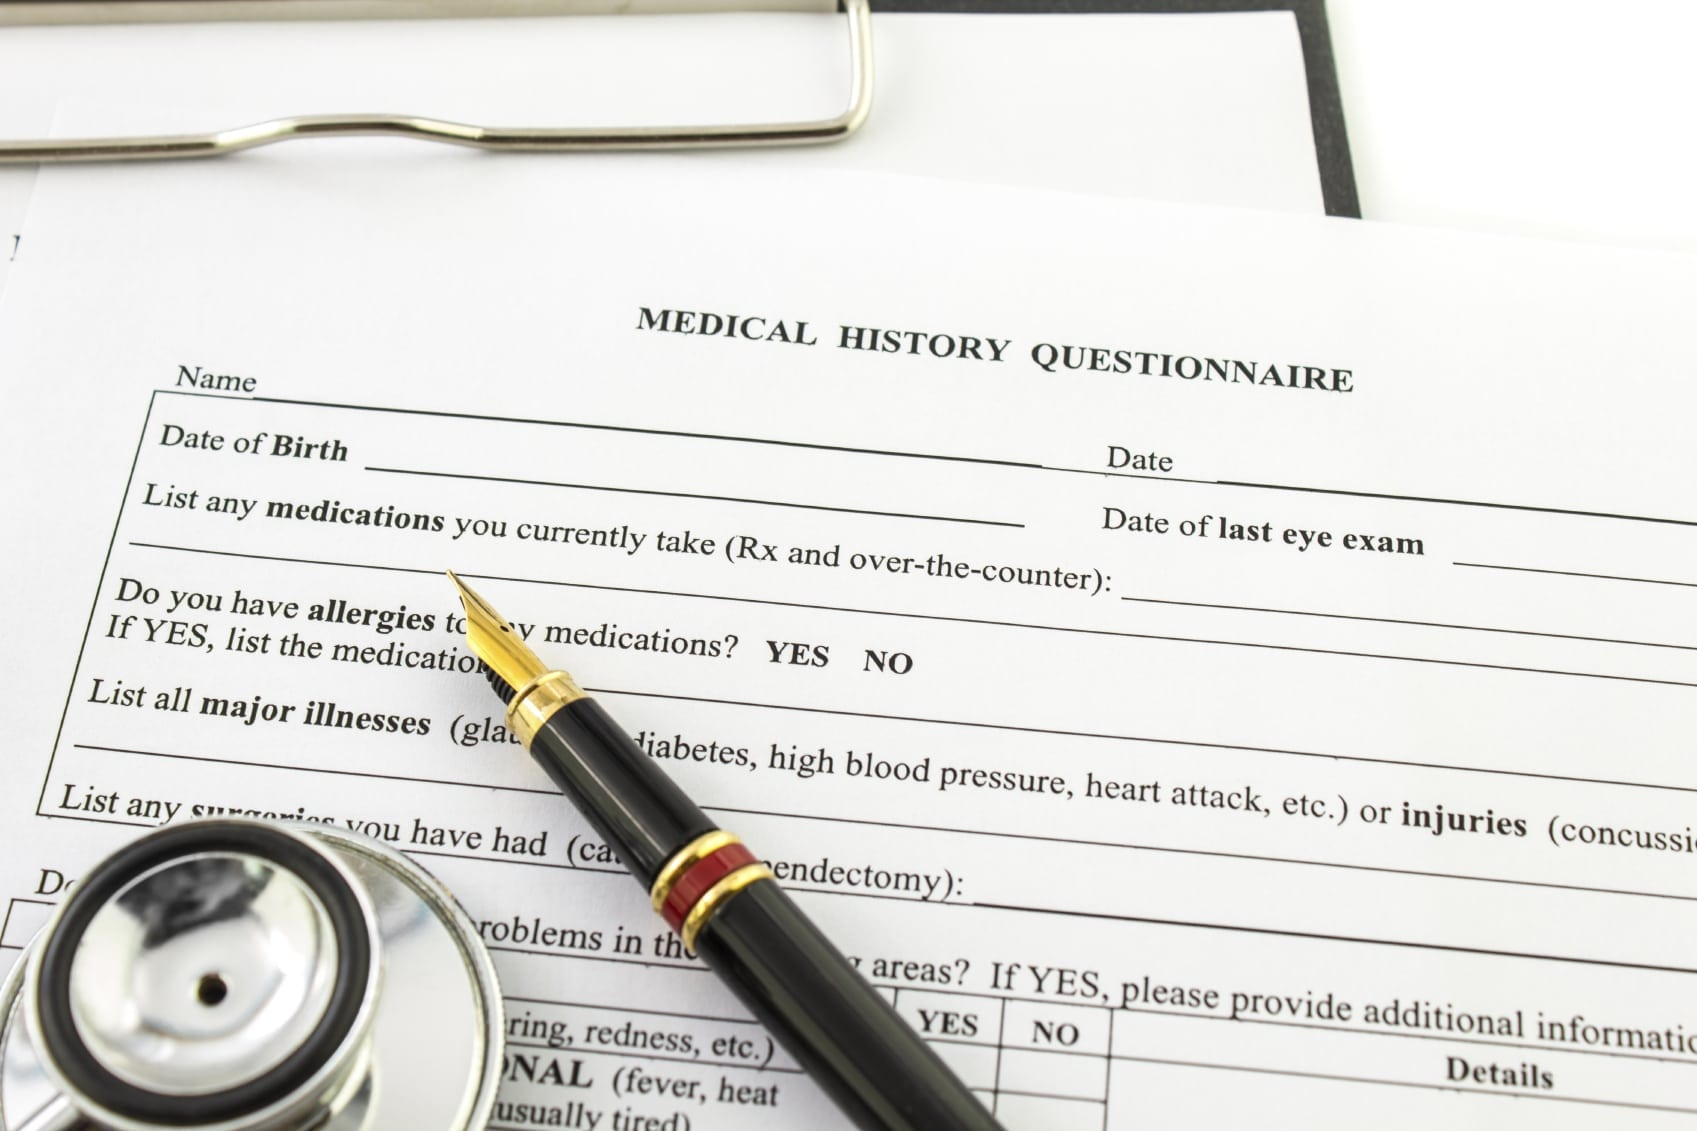 Medical History Questionnaire Stock Photo